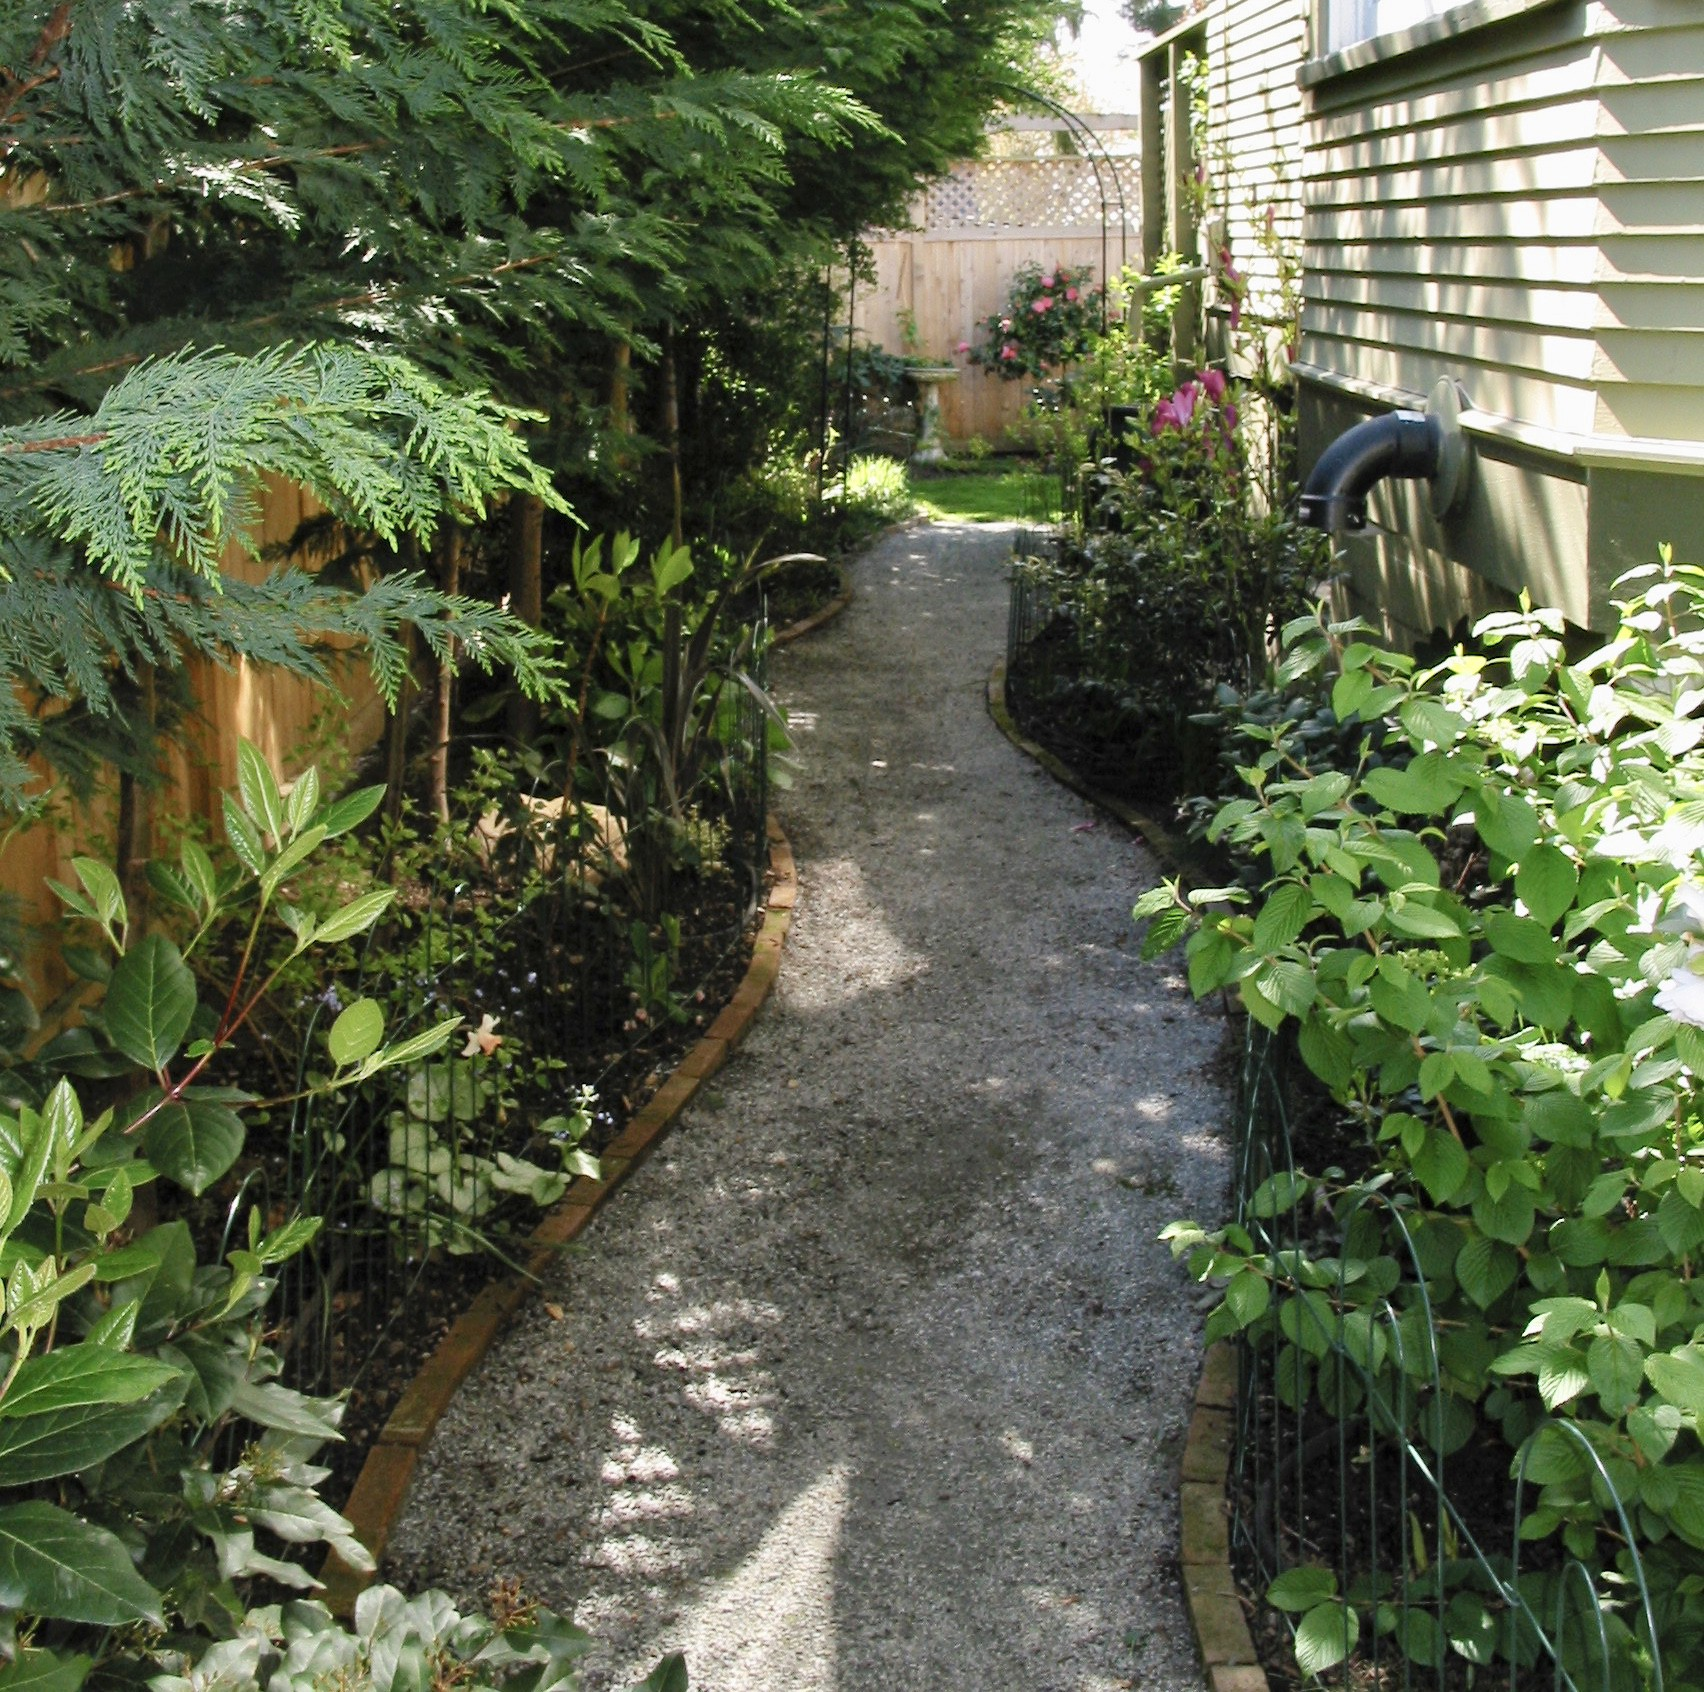 How To Install A Gravel Path In The Garden Karen Hugg Medium